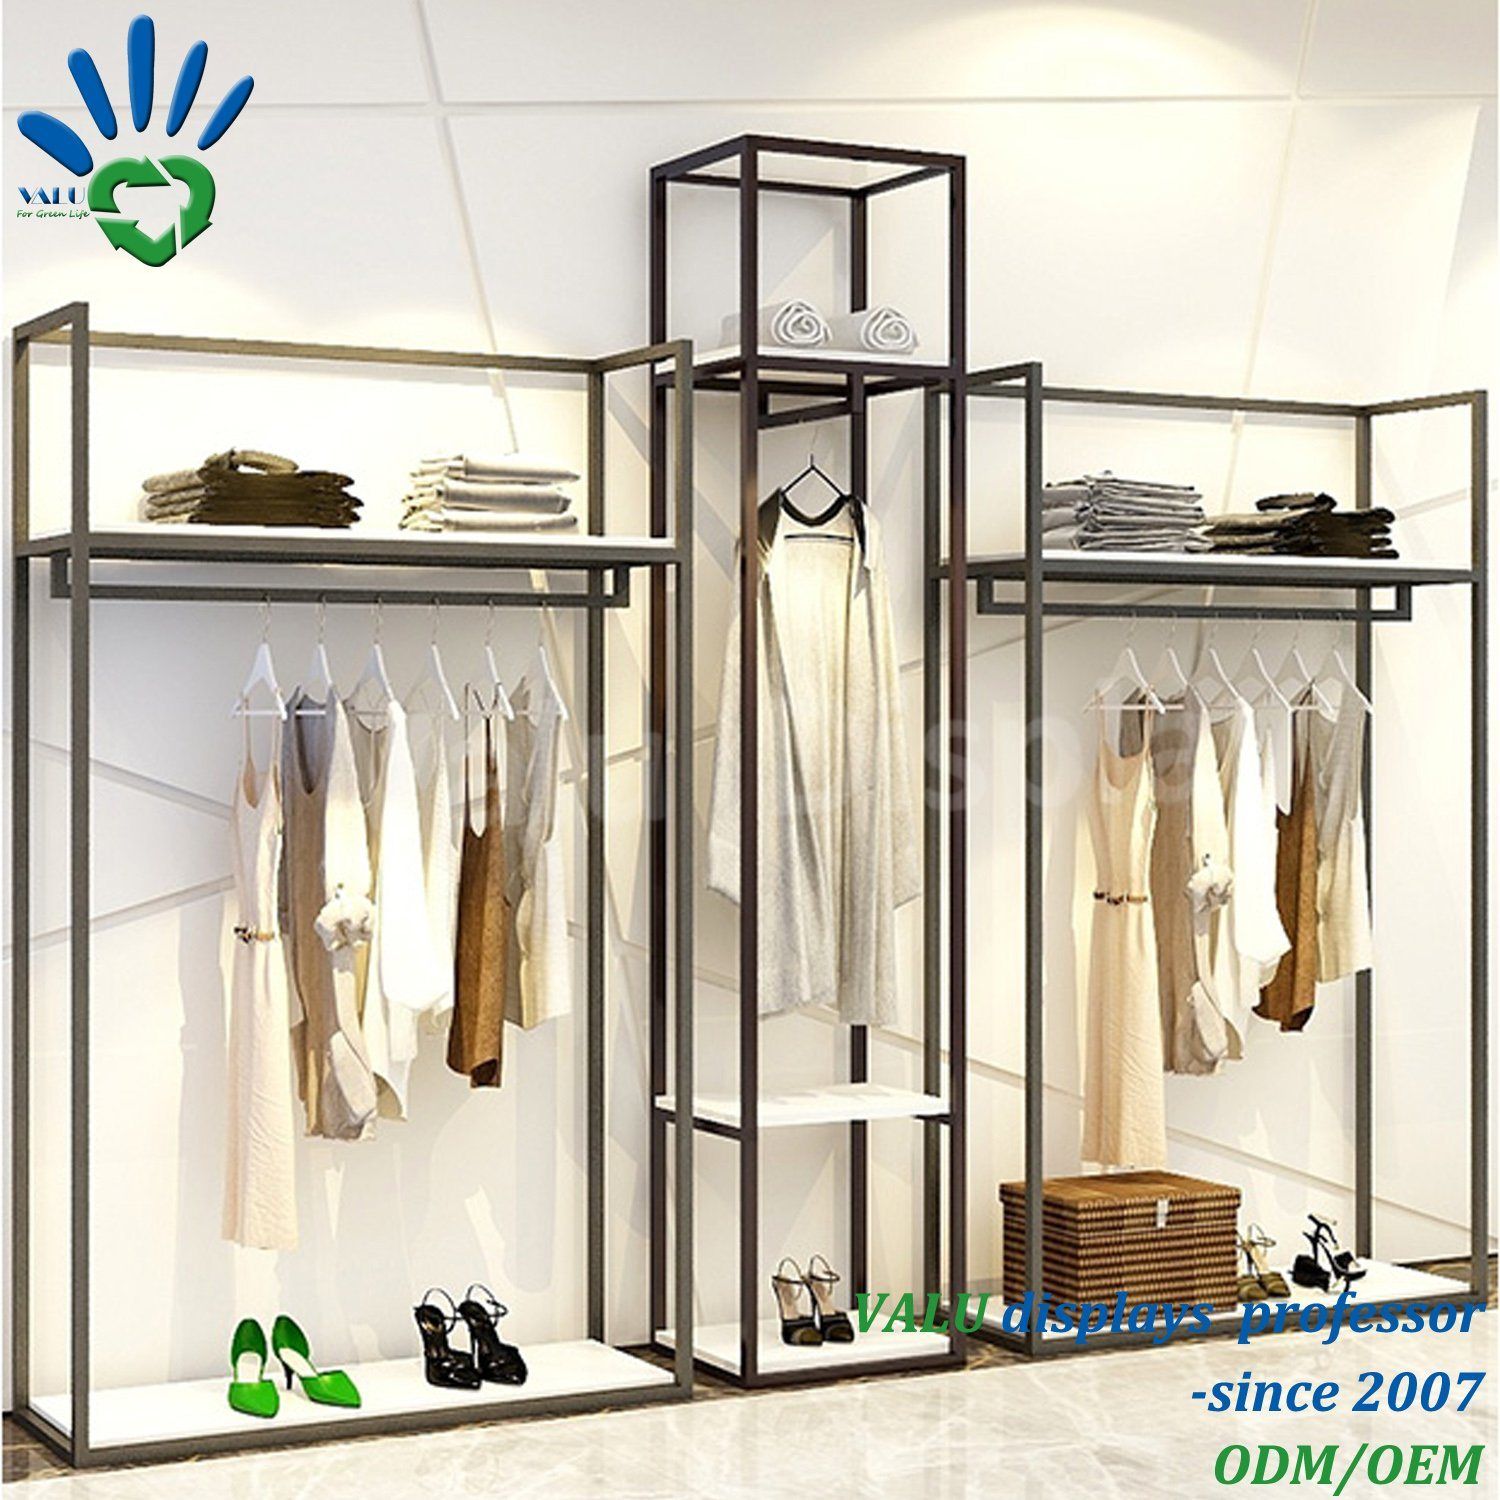 China Fashion Design Clothes Shop Interior Design Garment Shop Decoration Clothing Store Furniture Photos Pictures Made In China Com